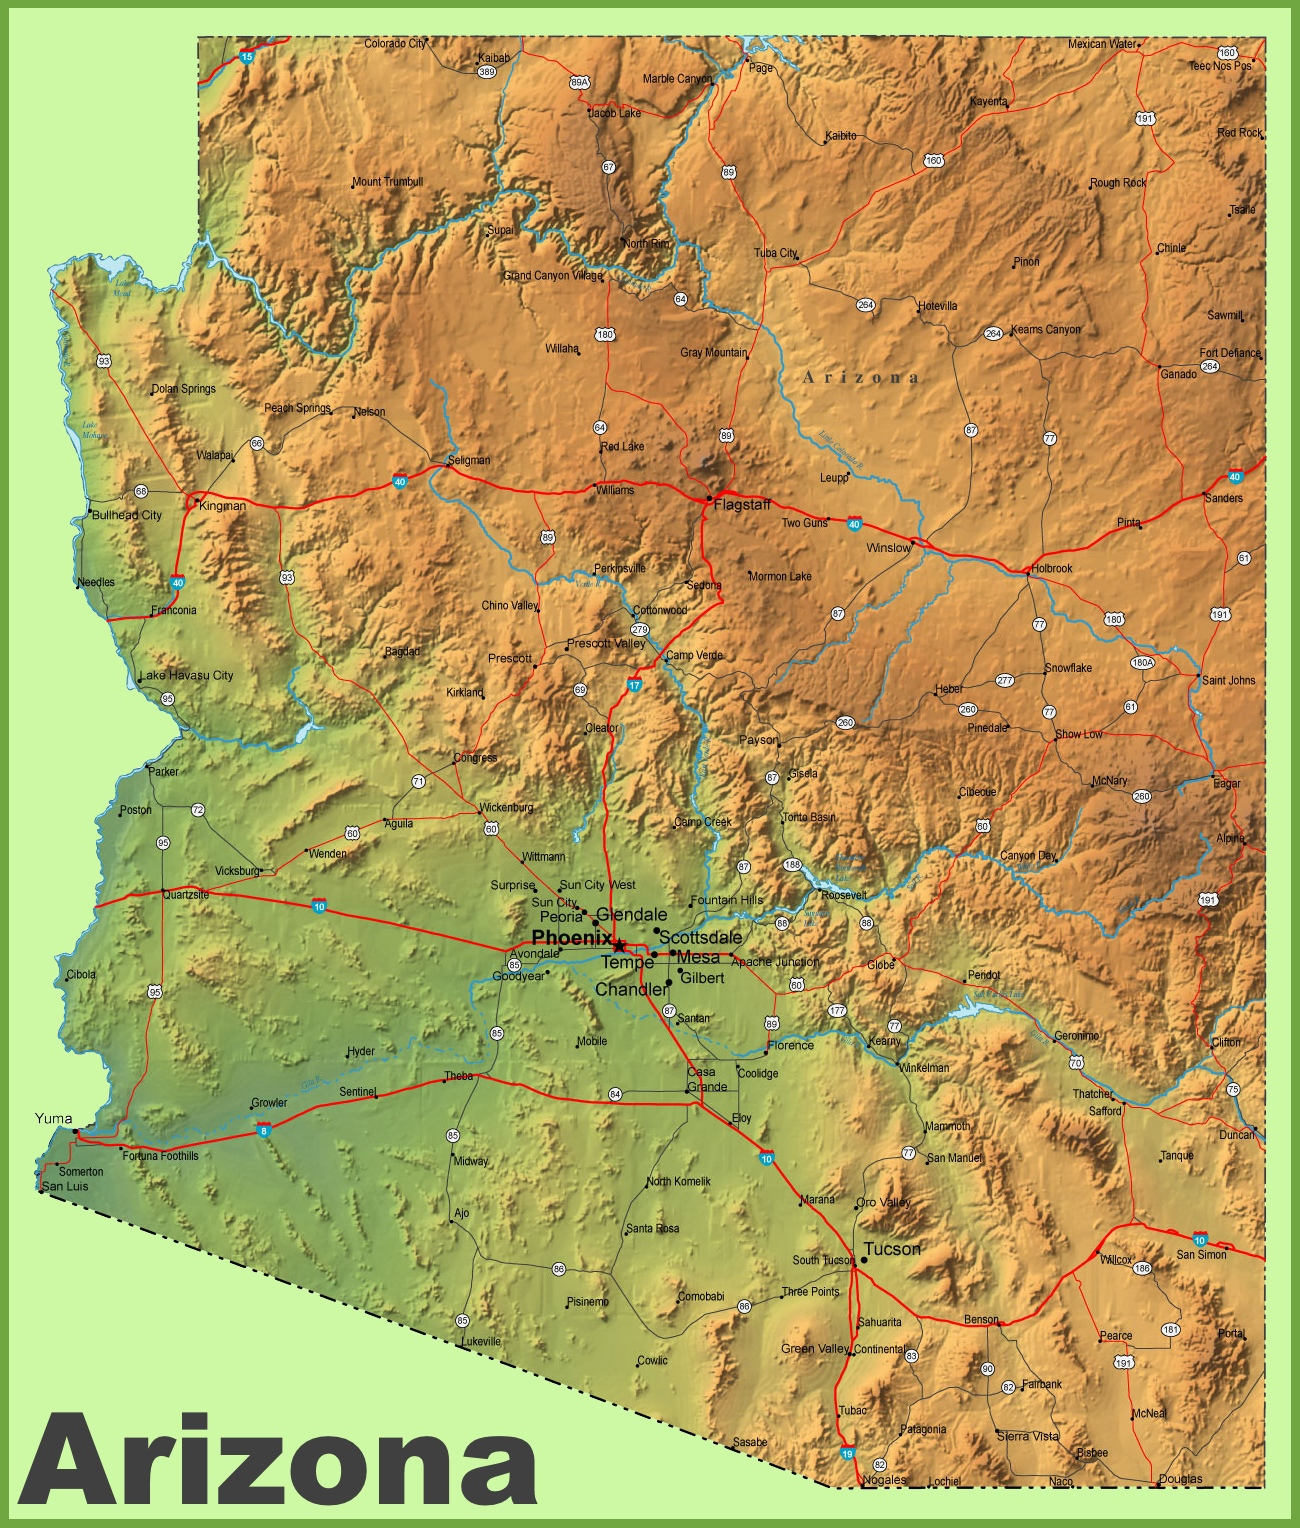 Arizona Physical Map - Mapof arizona